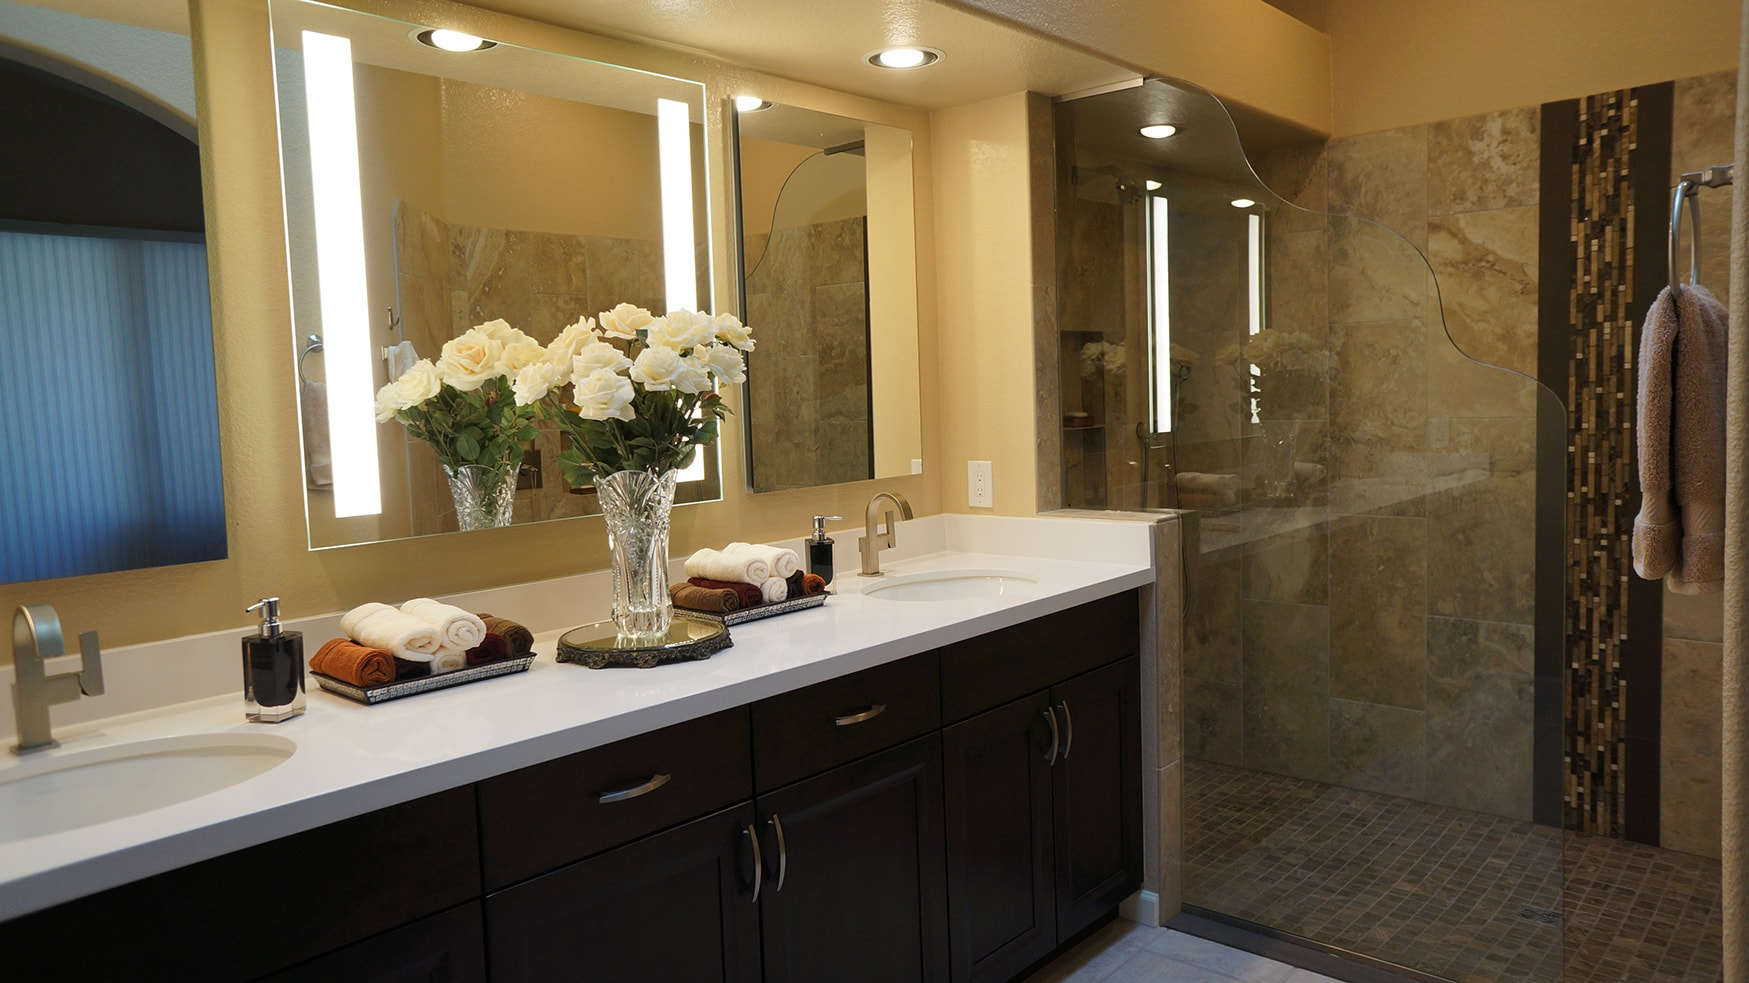 bathroom remodeling project completed by Superior remodeling contractors